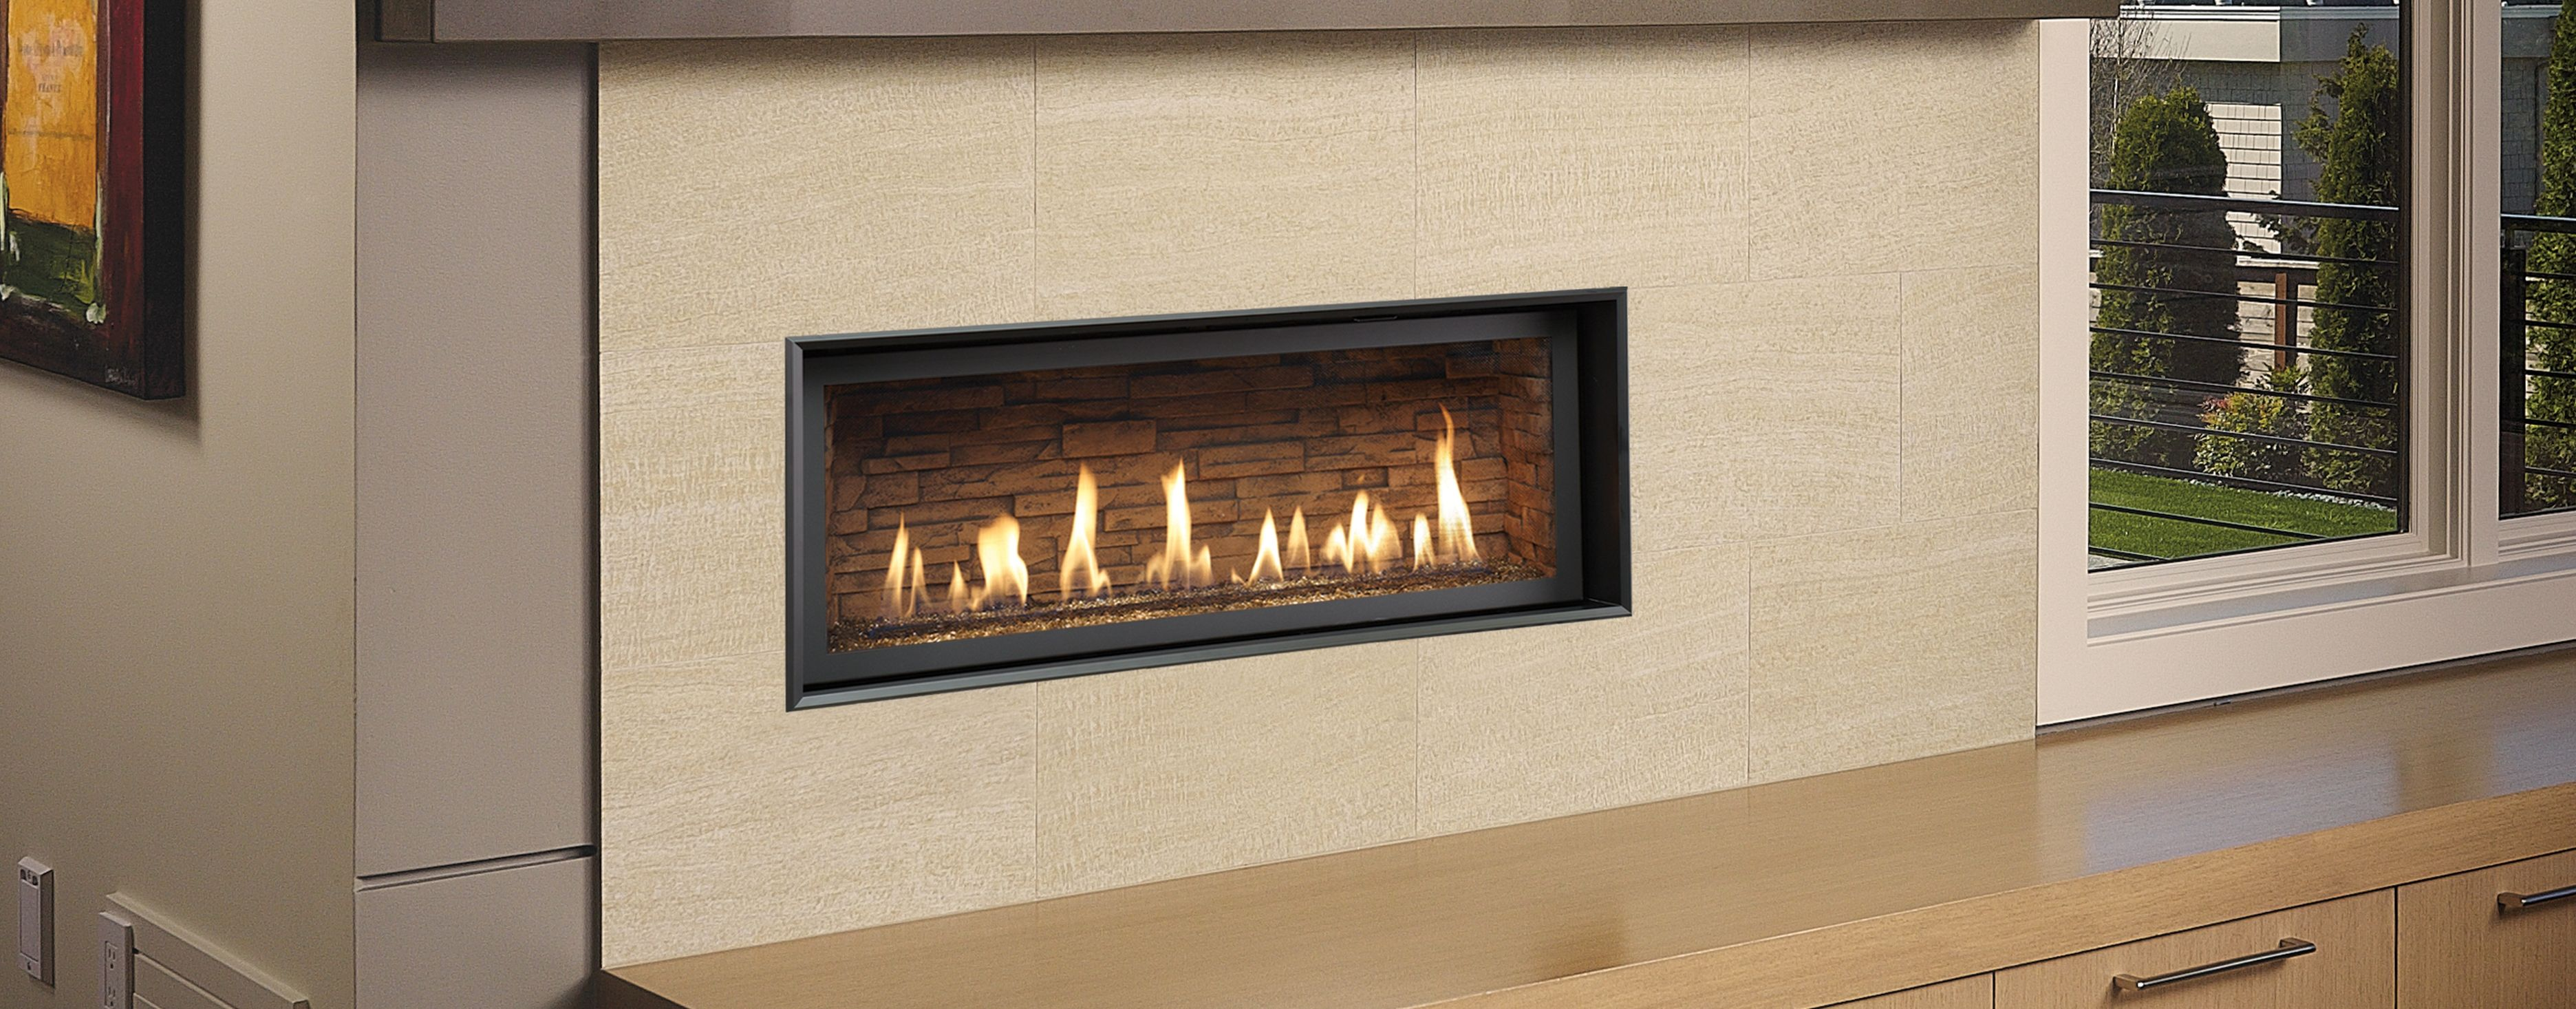 xtrordinair s high output linear gas fireplace series with 3615